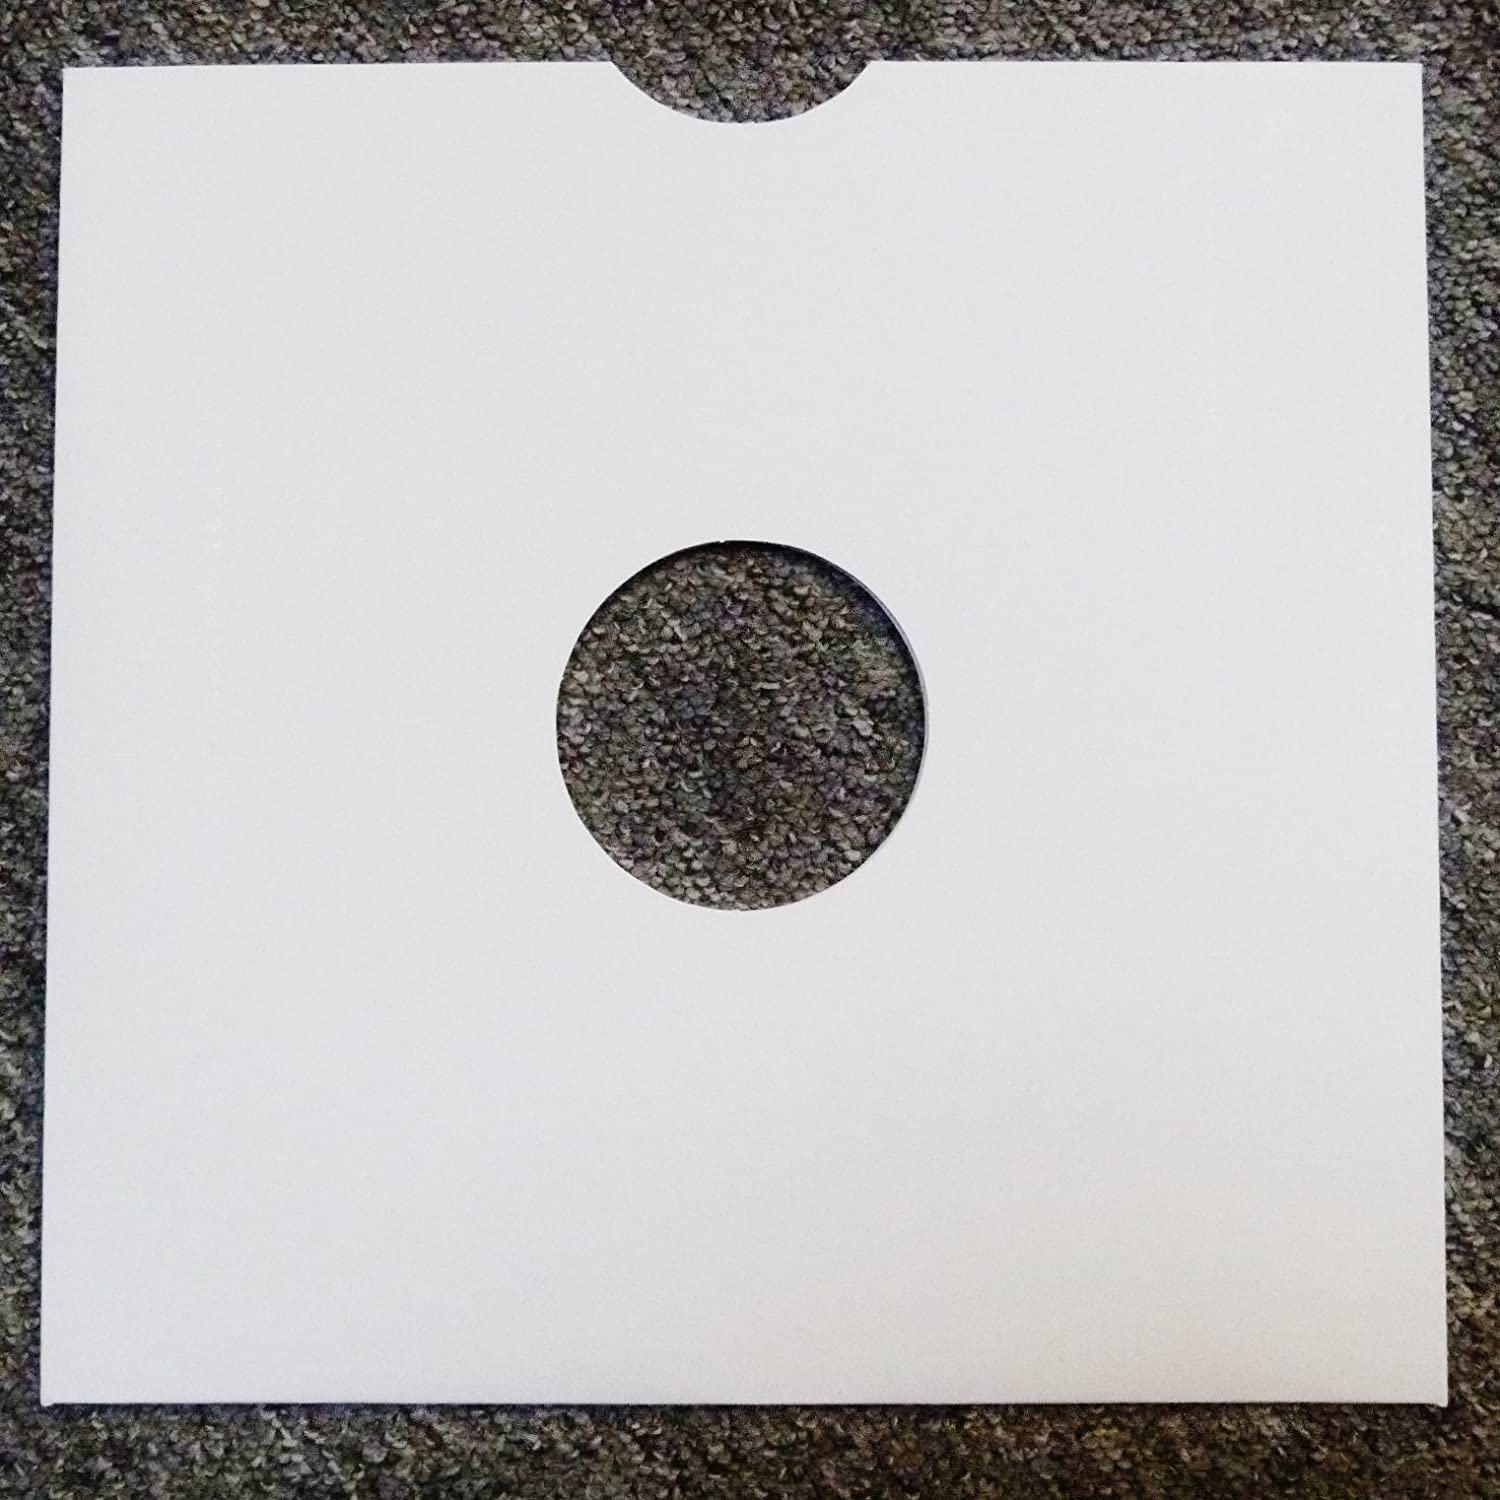 10 x 12 White Card Record / 78 Archive Sleeves lewthwaitemusic